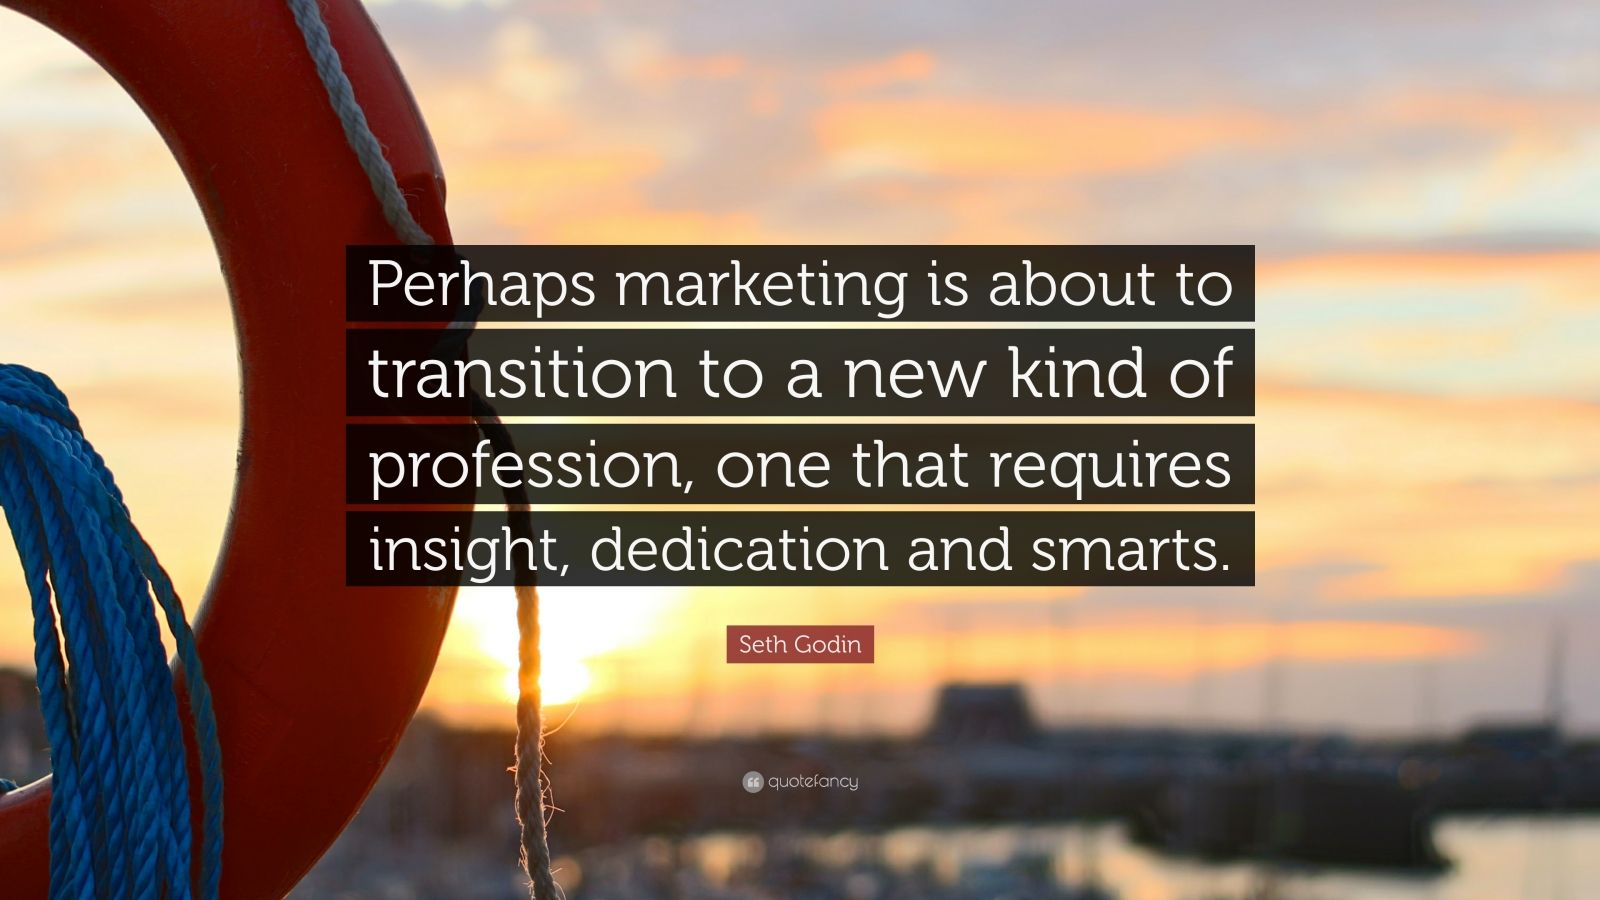 """Seth Godin Quote: """"Perhaps marketing is about to transition to a new kind of profession, one that requires insight, dedication and smarts."""""""